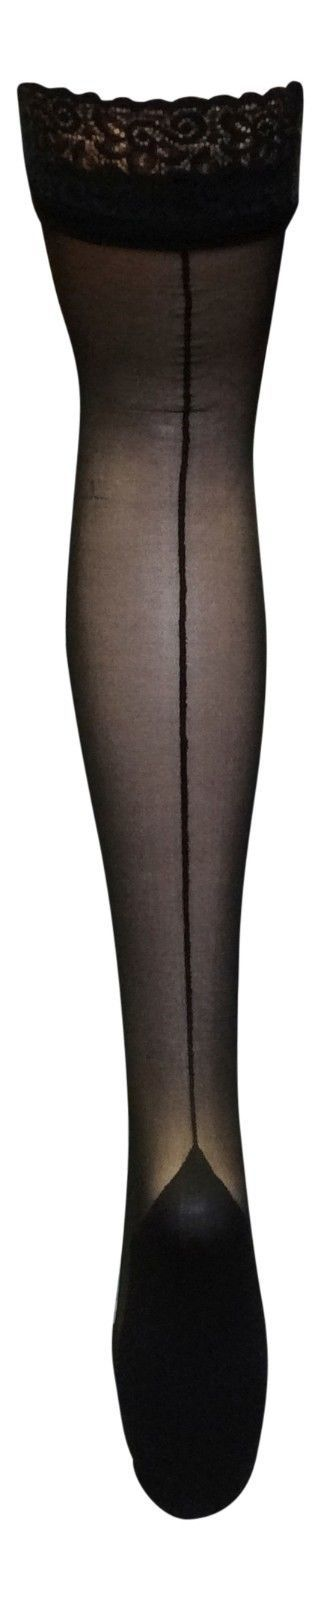 Womens Sexy Black Lace Top Colored Cuban Heel Thigh High Nylon Seamed Stockings